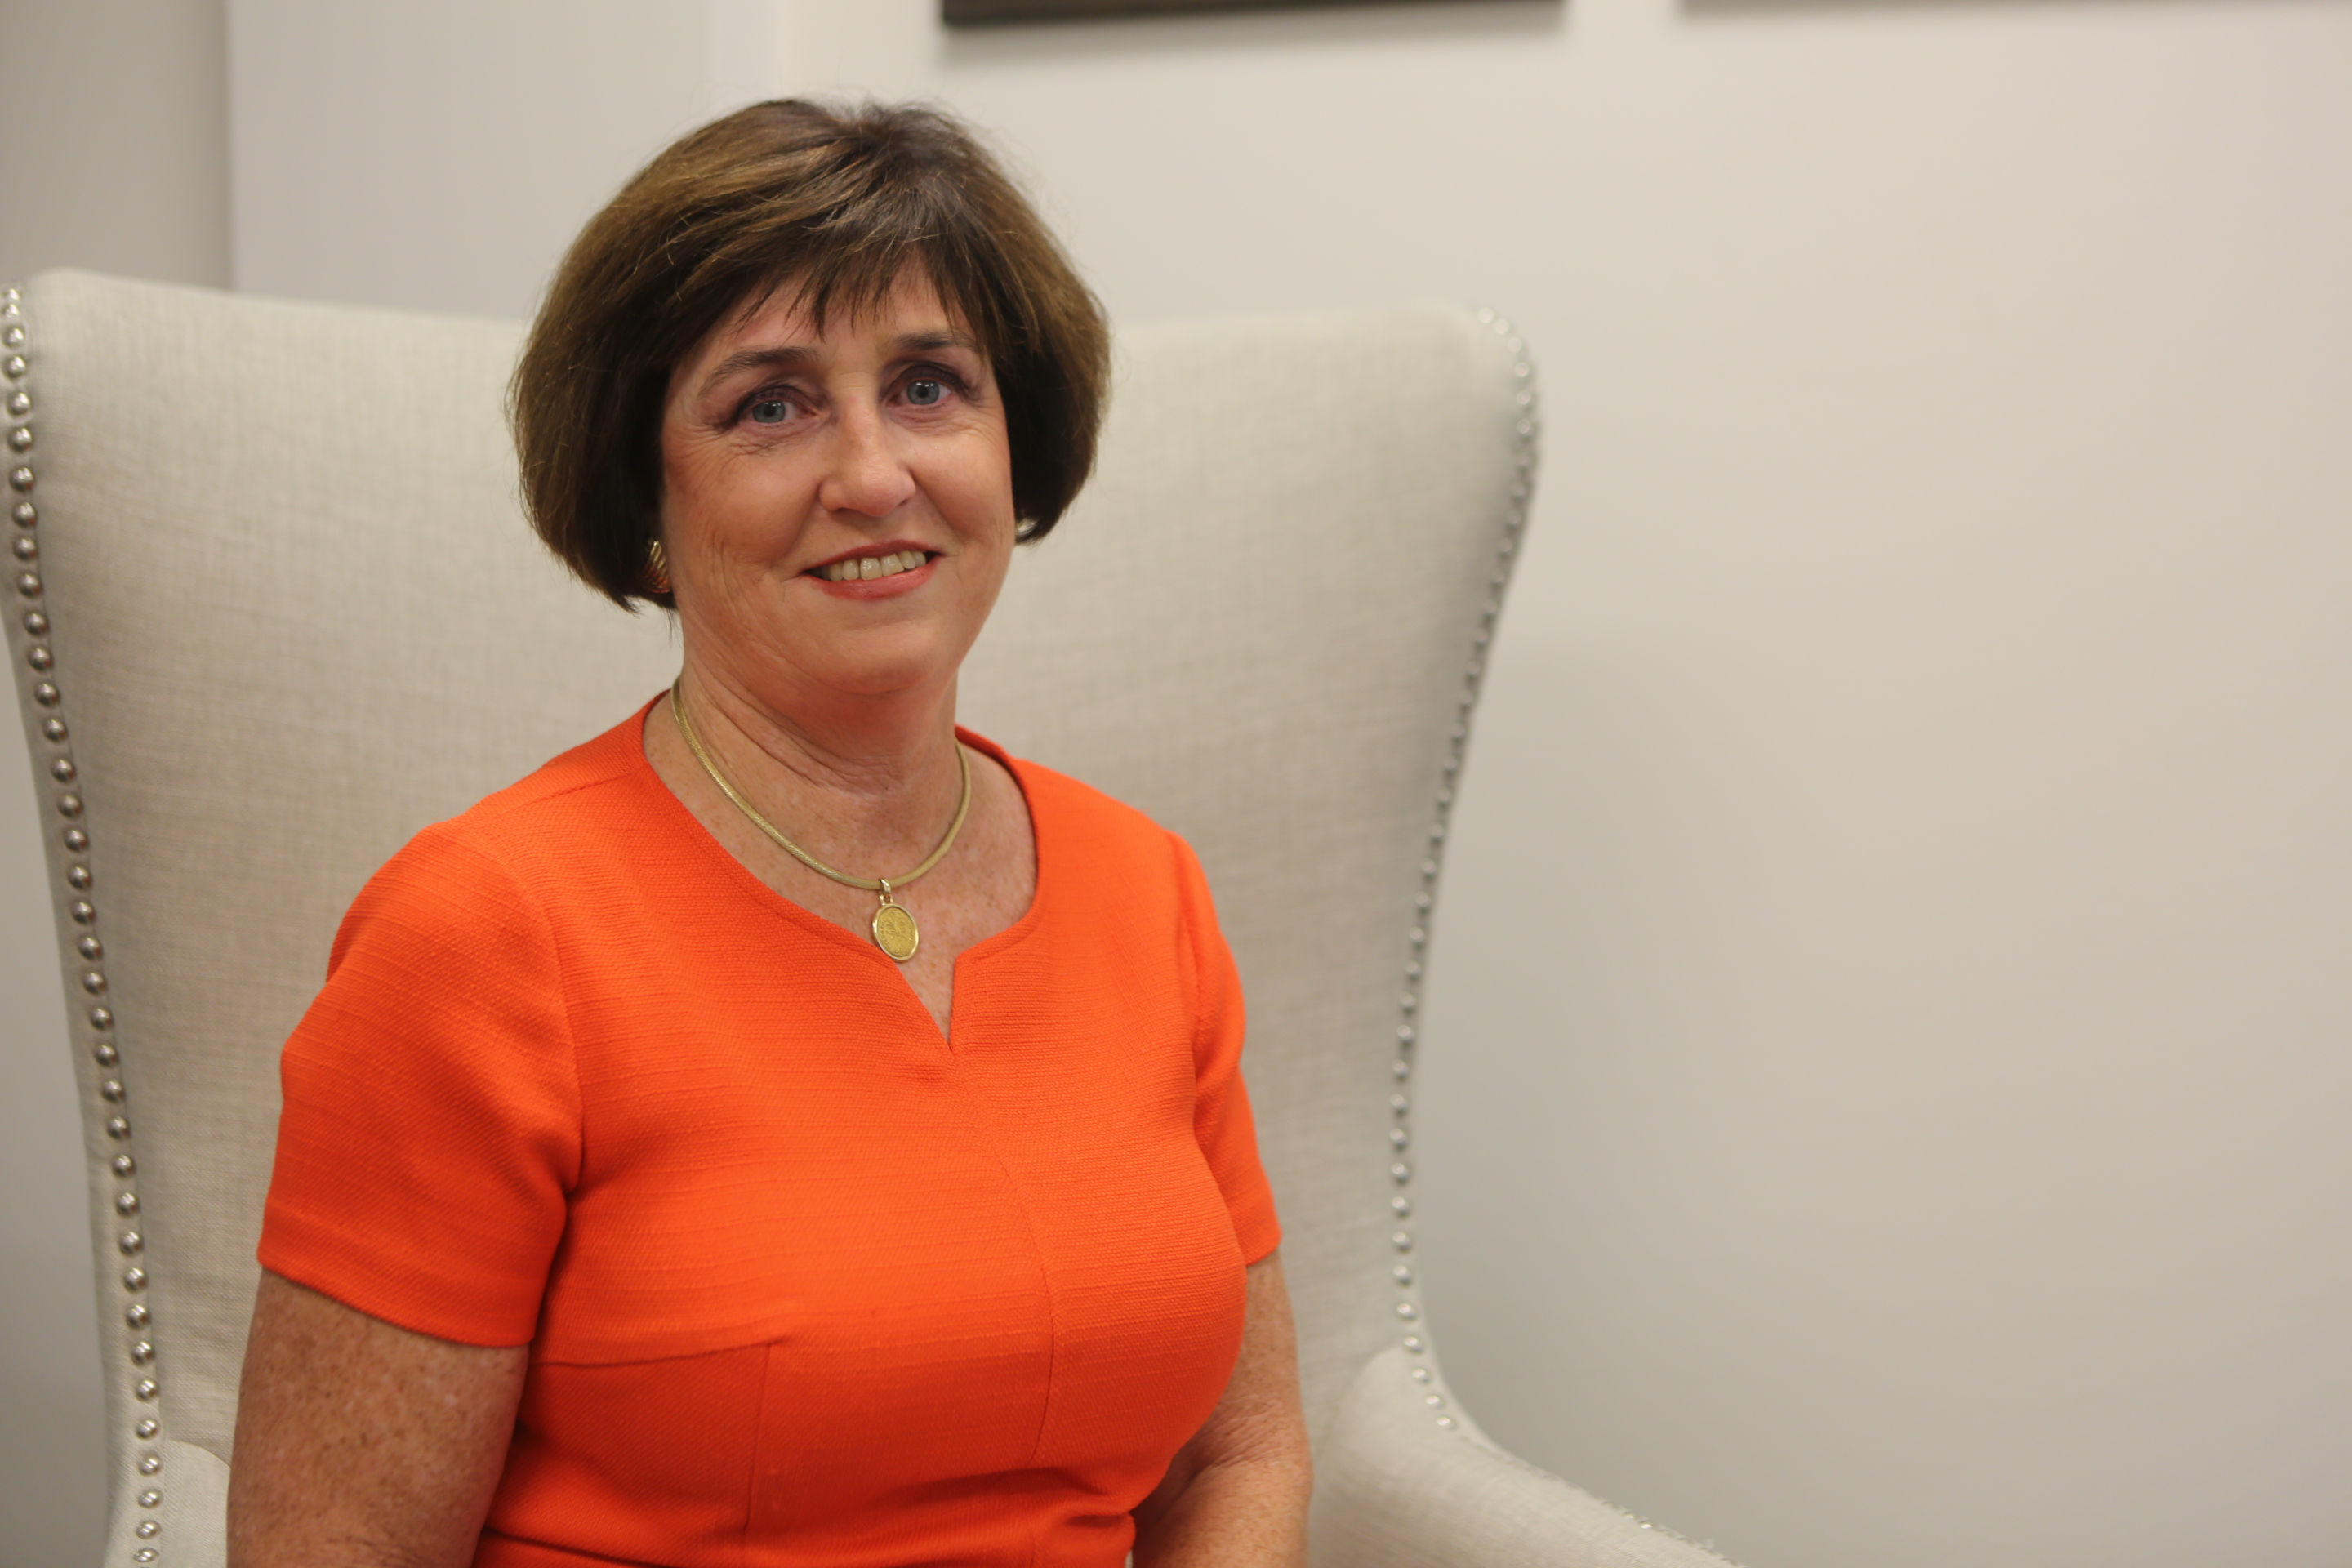 Q&A with Executive Director of The Foundation, Maureen O'Keeffe Lindgren